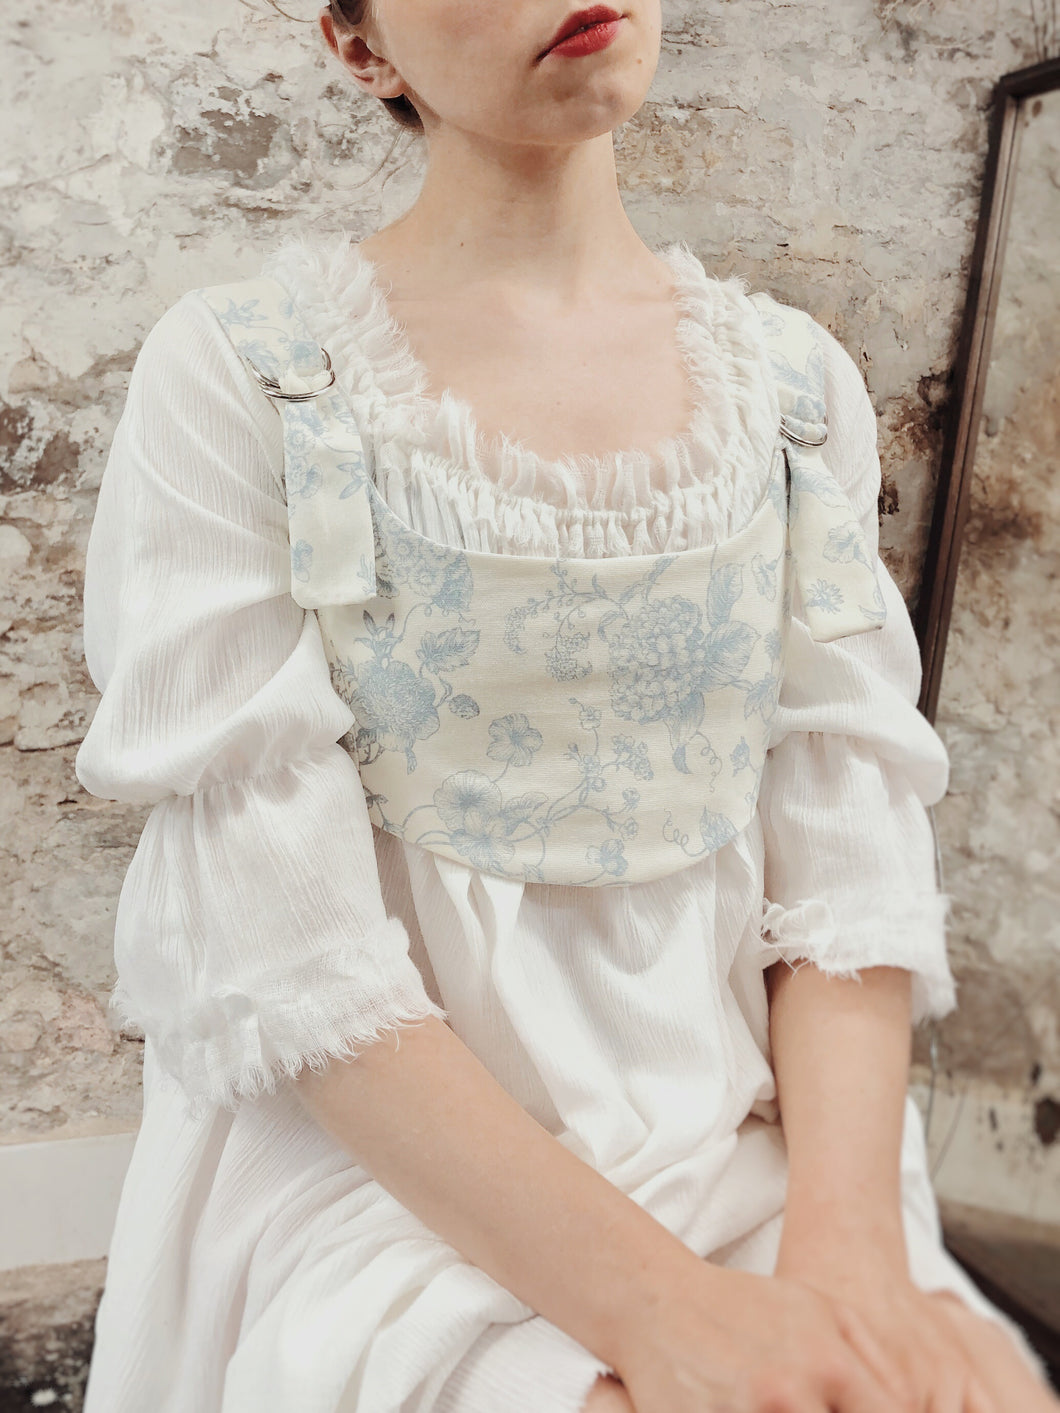 Summer 2020: Cropped Bustier in Toile de Jouy